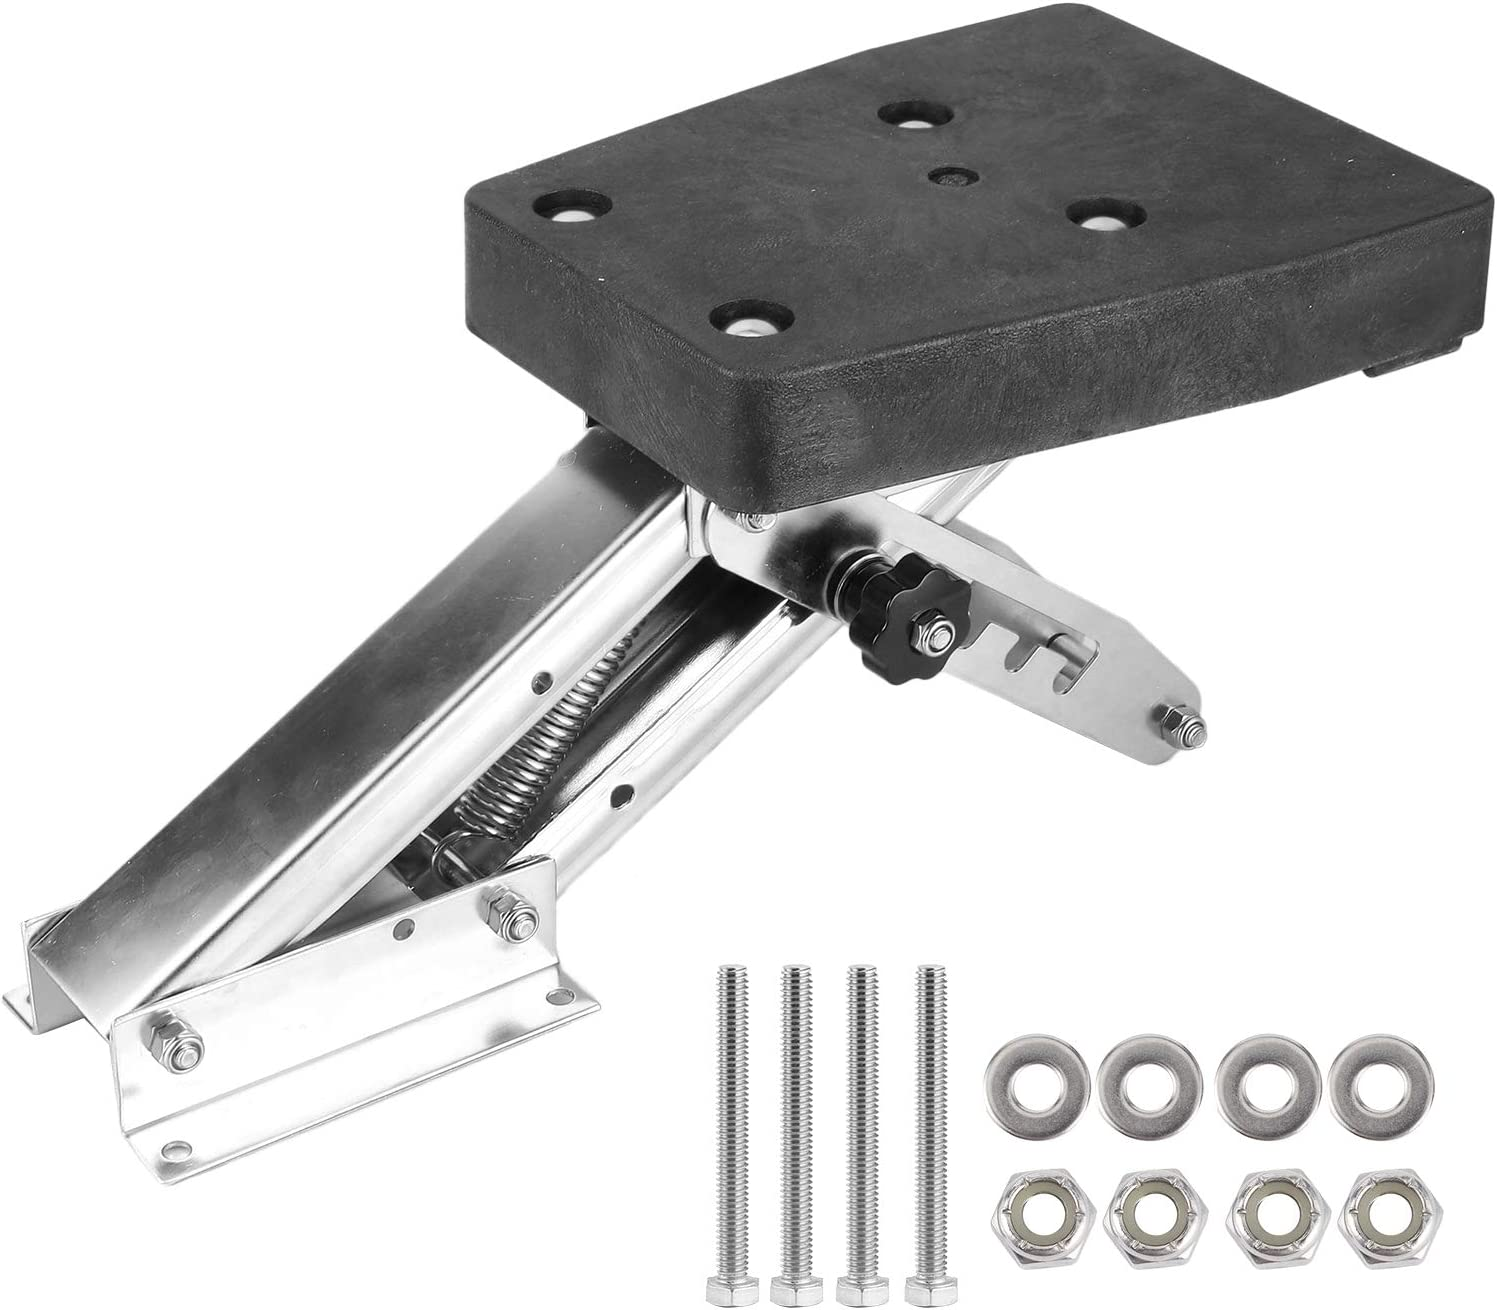 Bicaquu Outboard Motor Bracket 304 Stainless Steel Boat Motor Stand for Boat Steamship